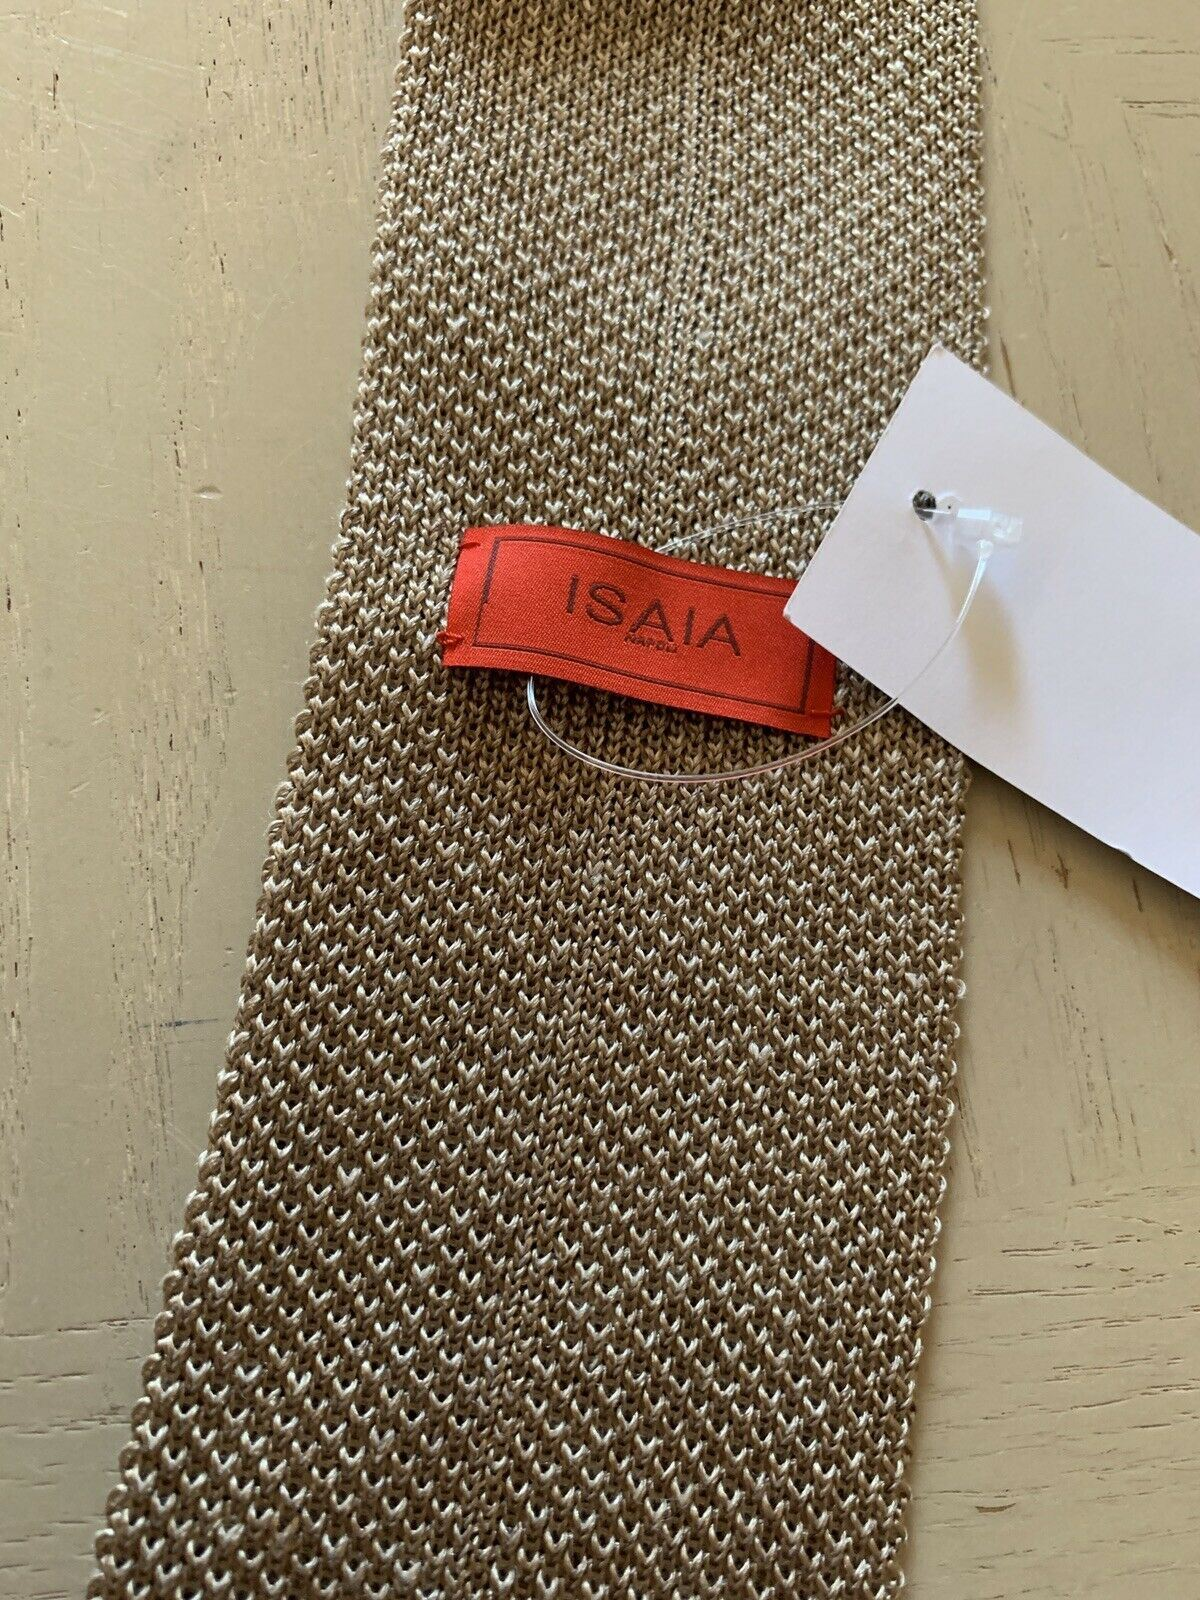 New $185 Isaia Skinny Neck Medium Brown Made in Italy